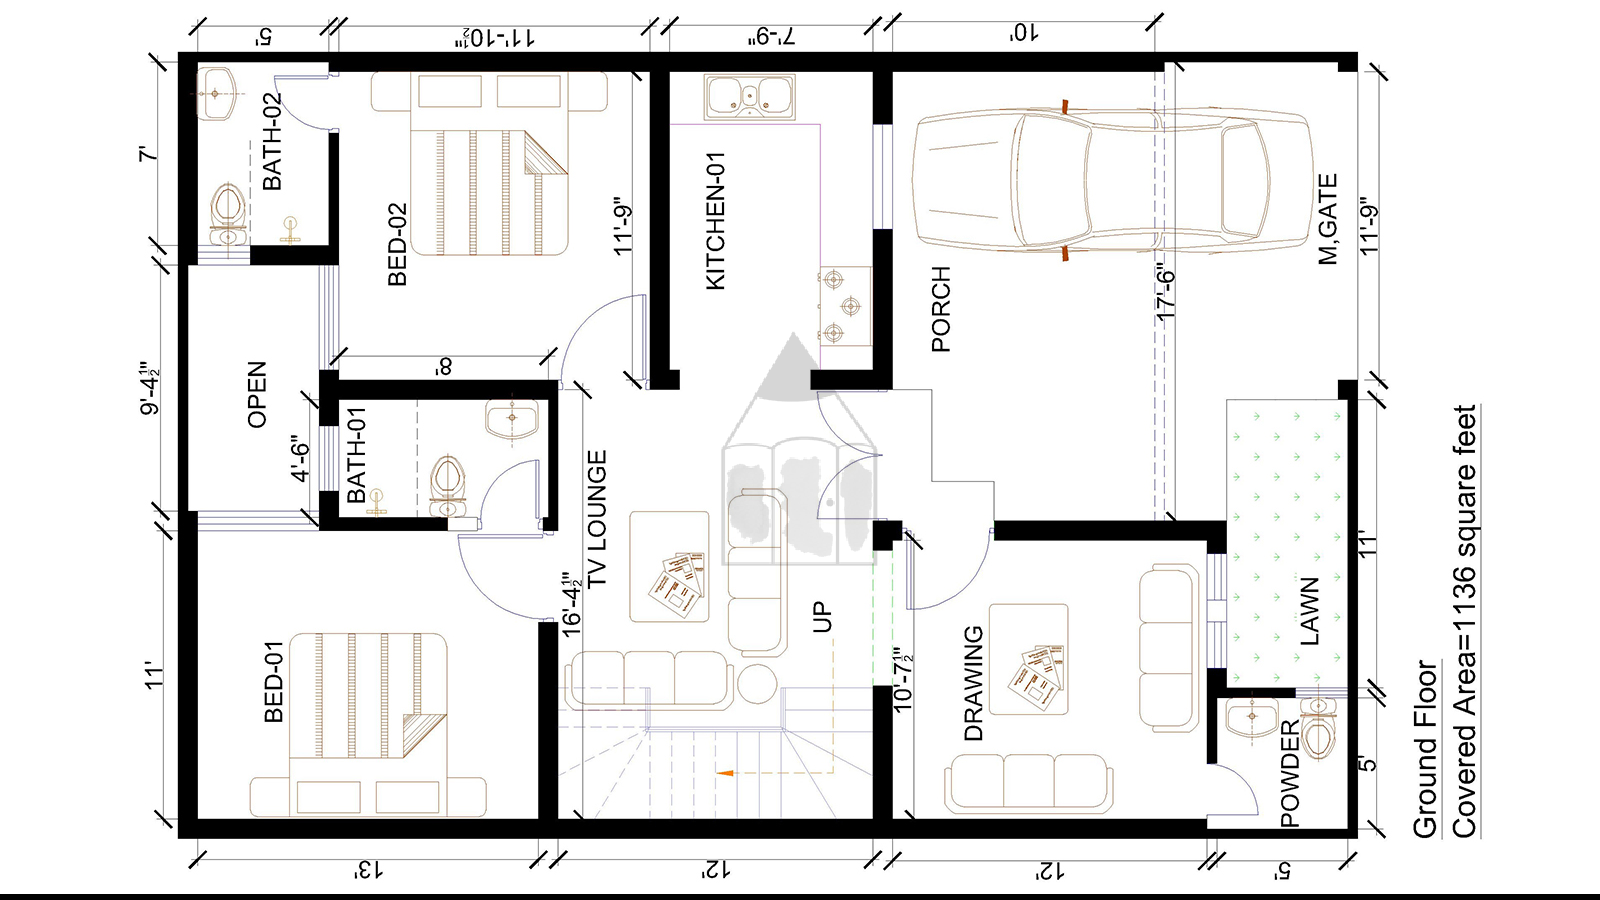 marla house layout plan for more plans visit http also pin by  anees on home design rh pinterest